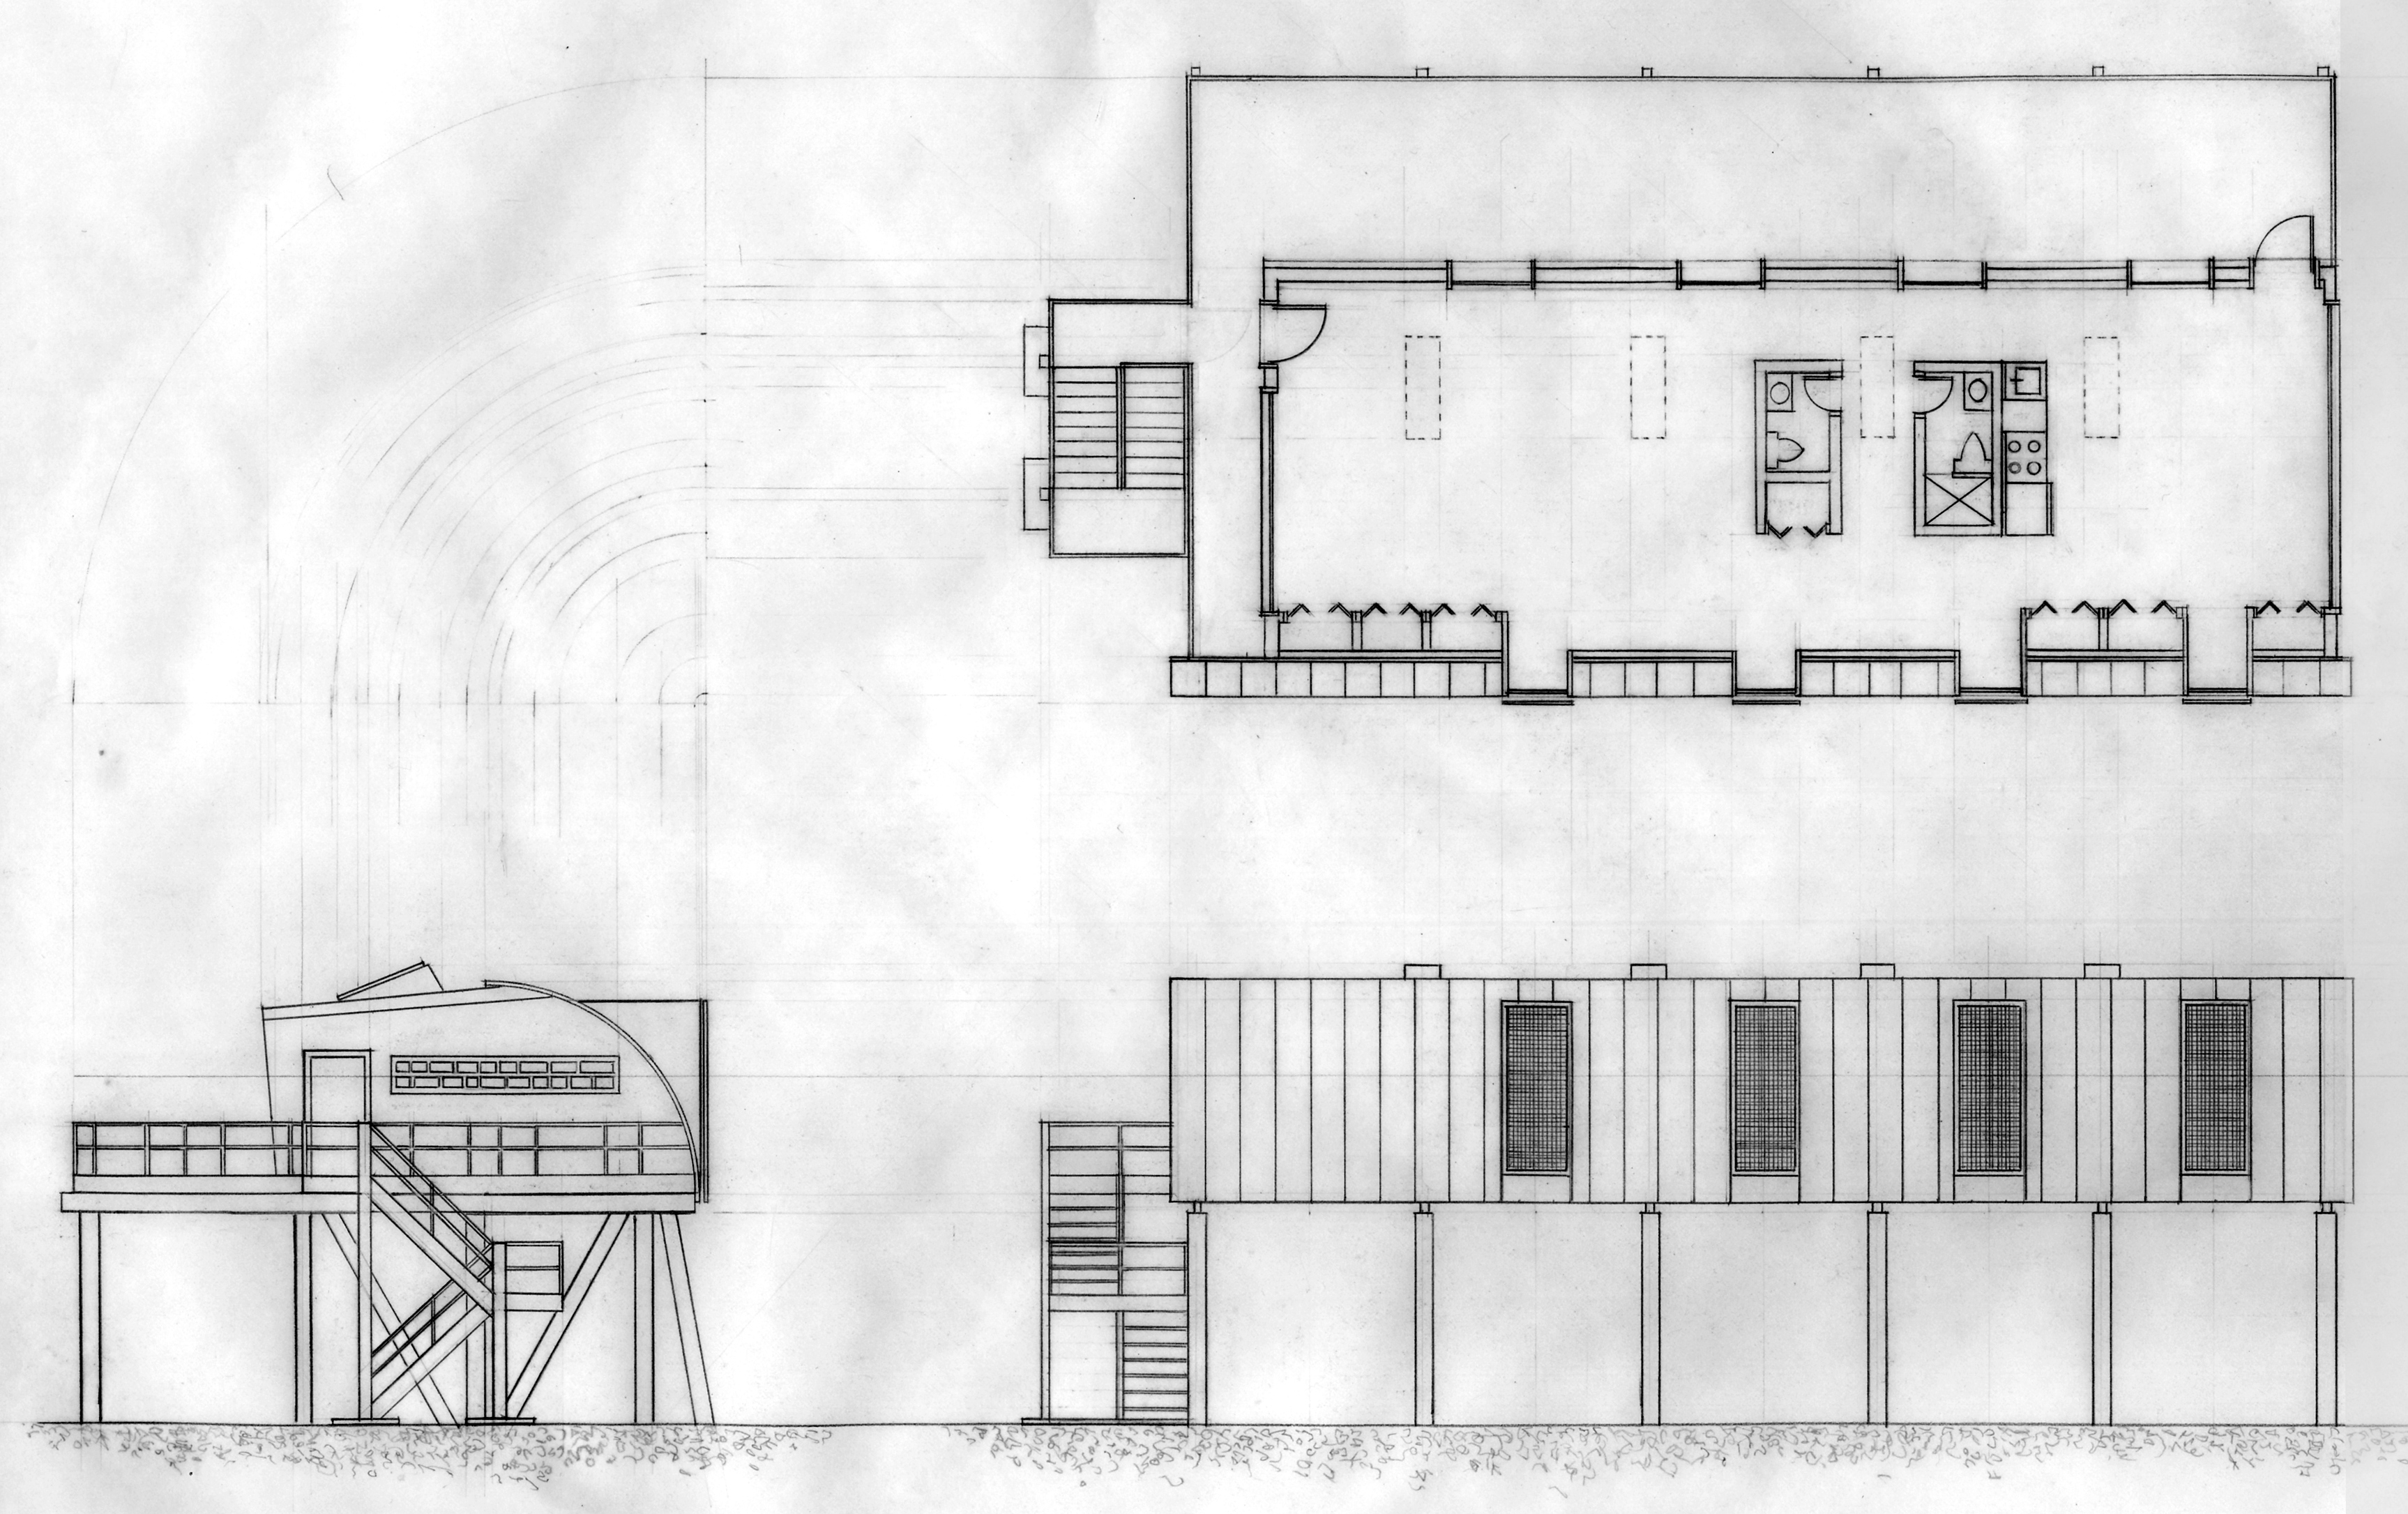 Hurricane House elevations & plan (2001)